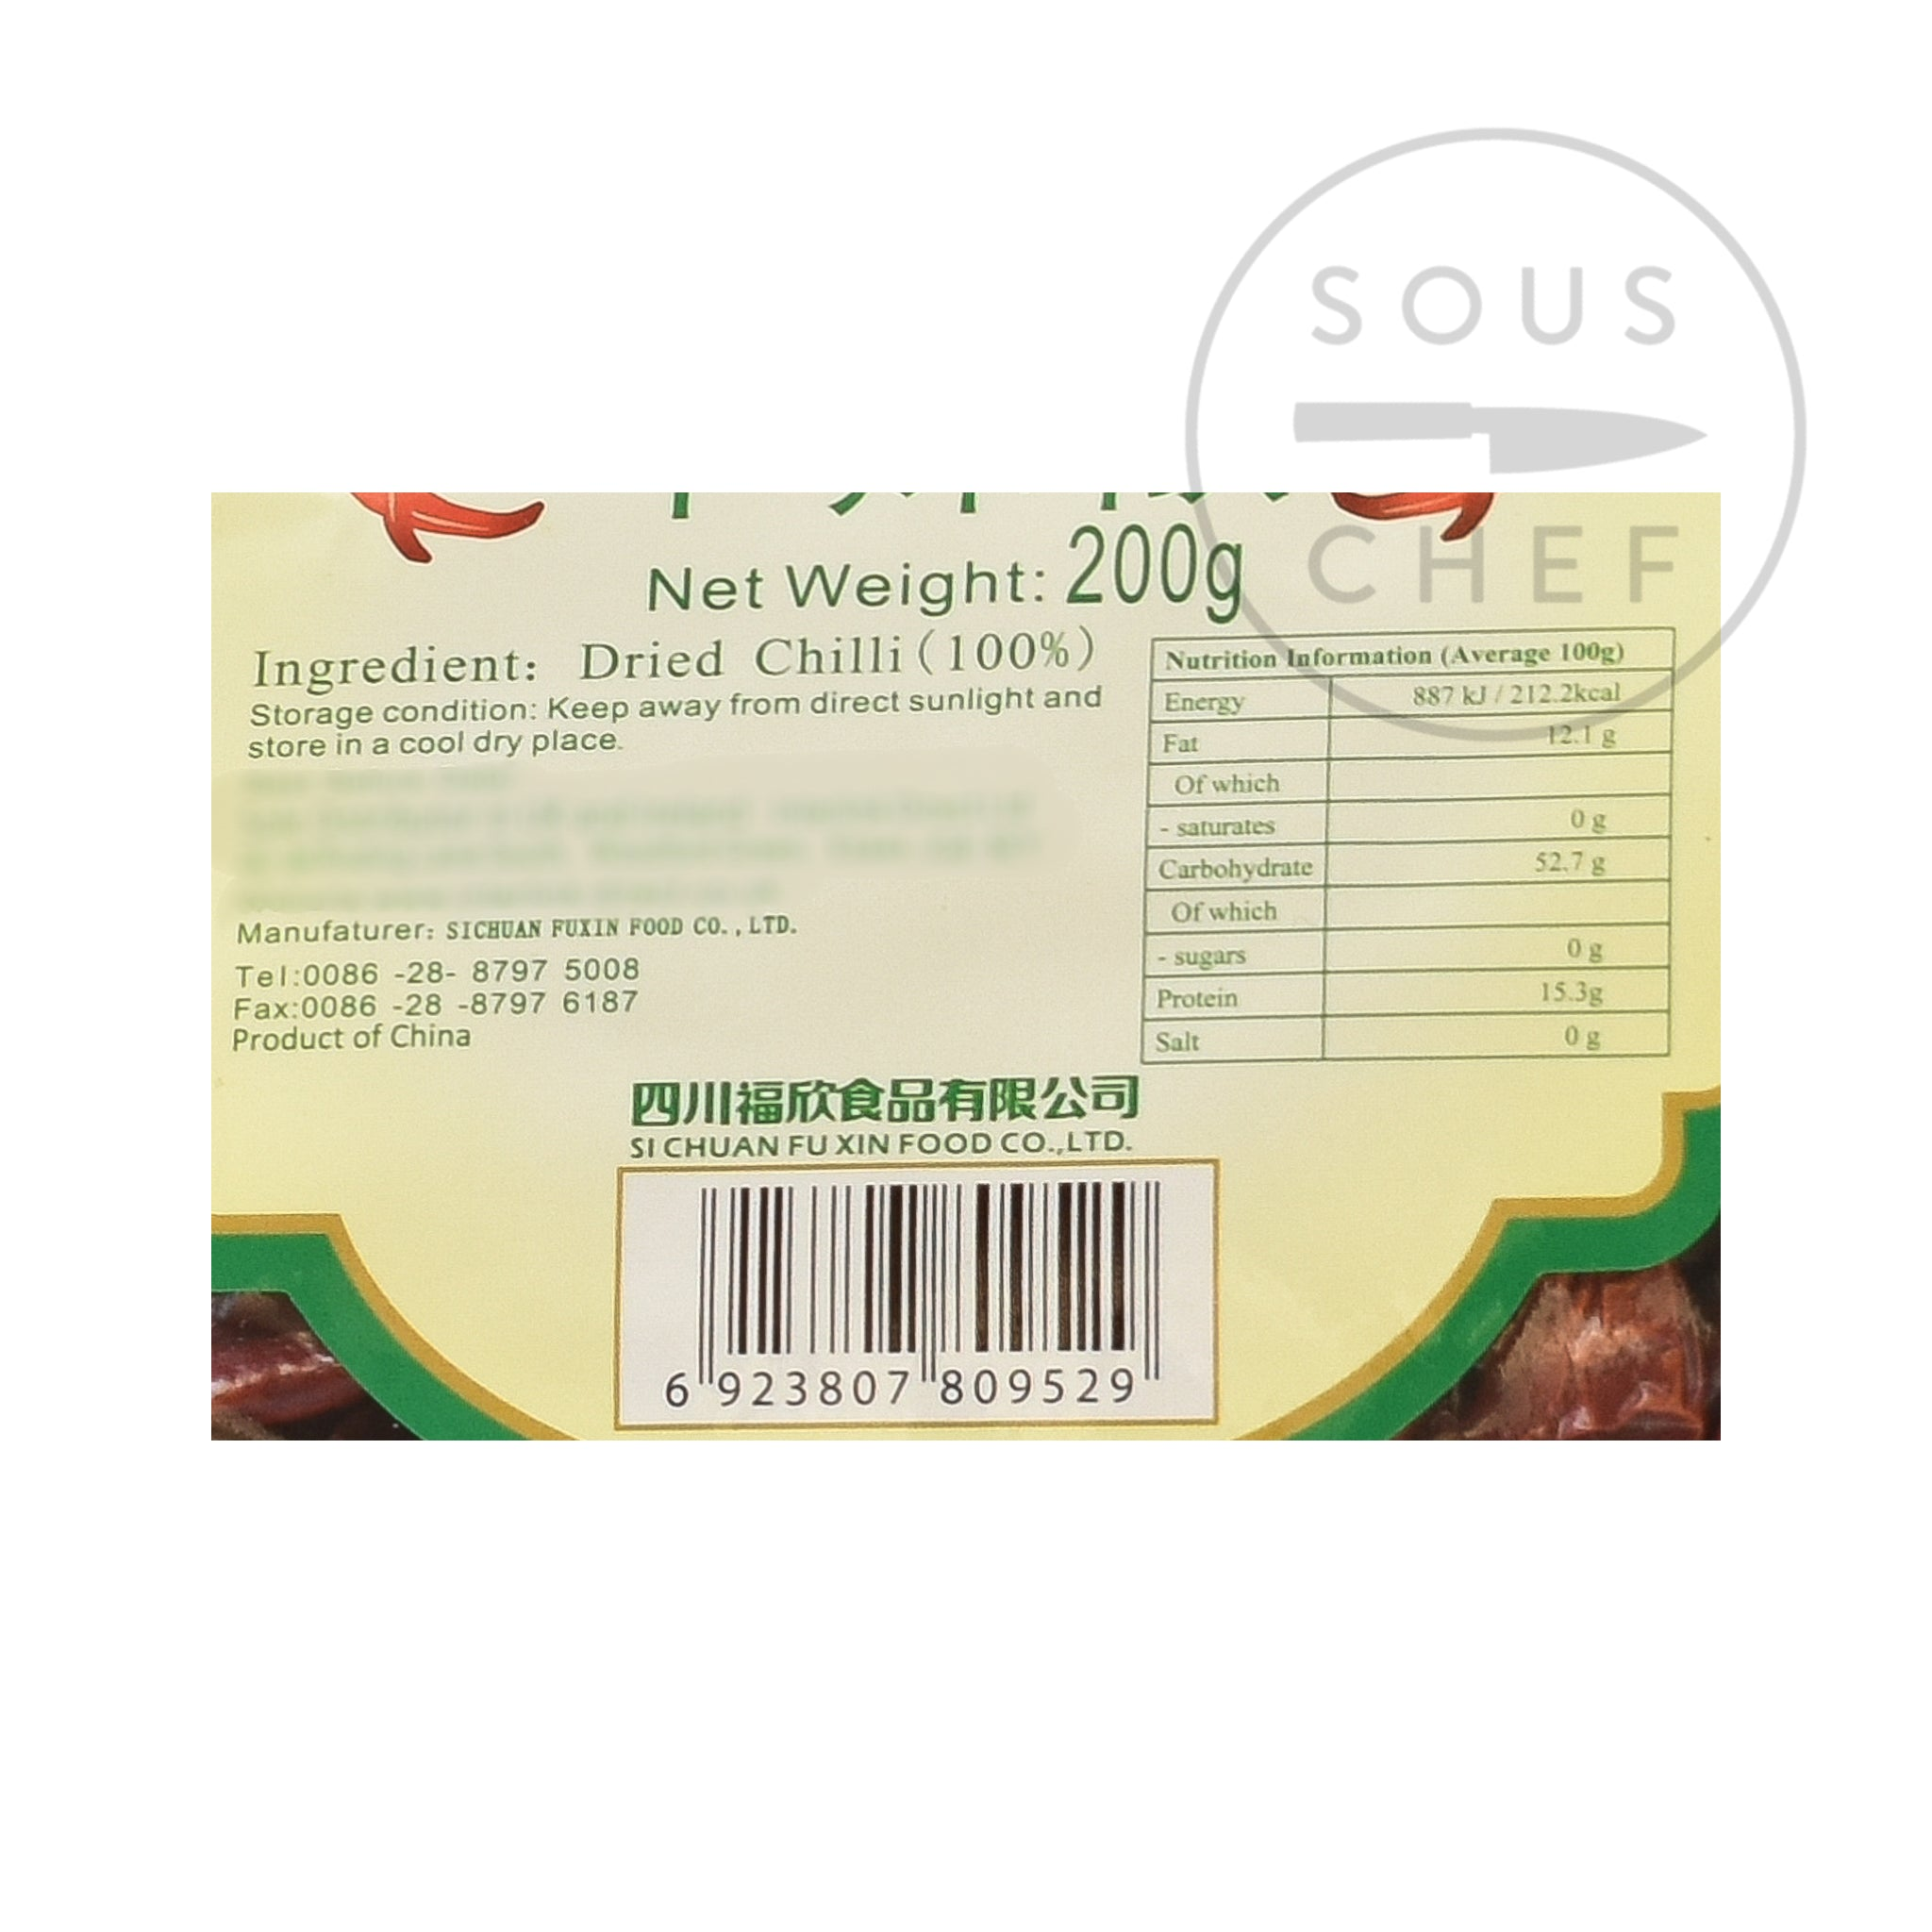 Sichuan Long Dried Chilli 200g nutritional information ingredients